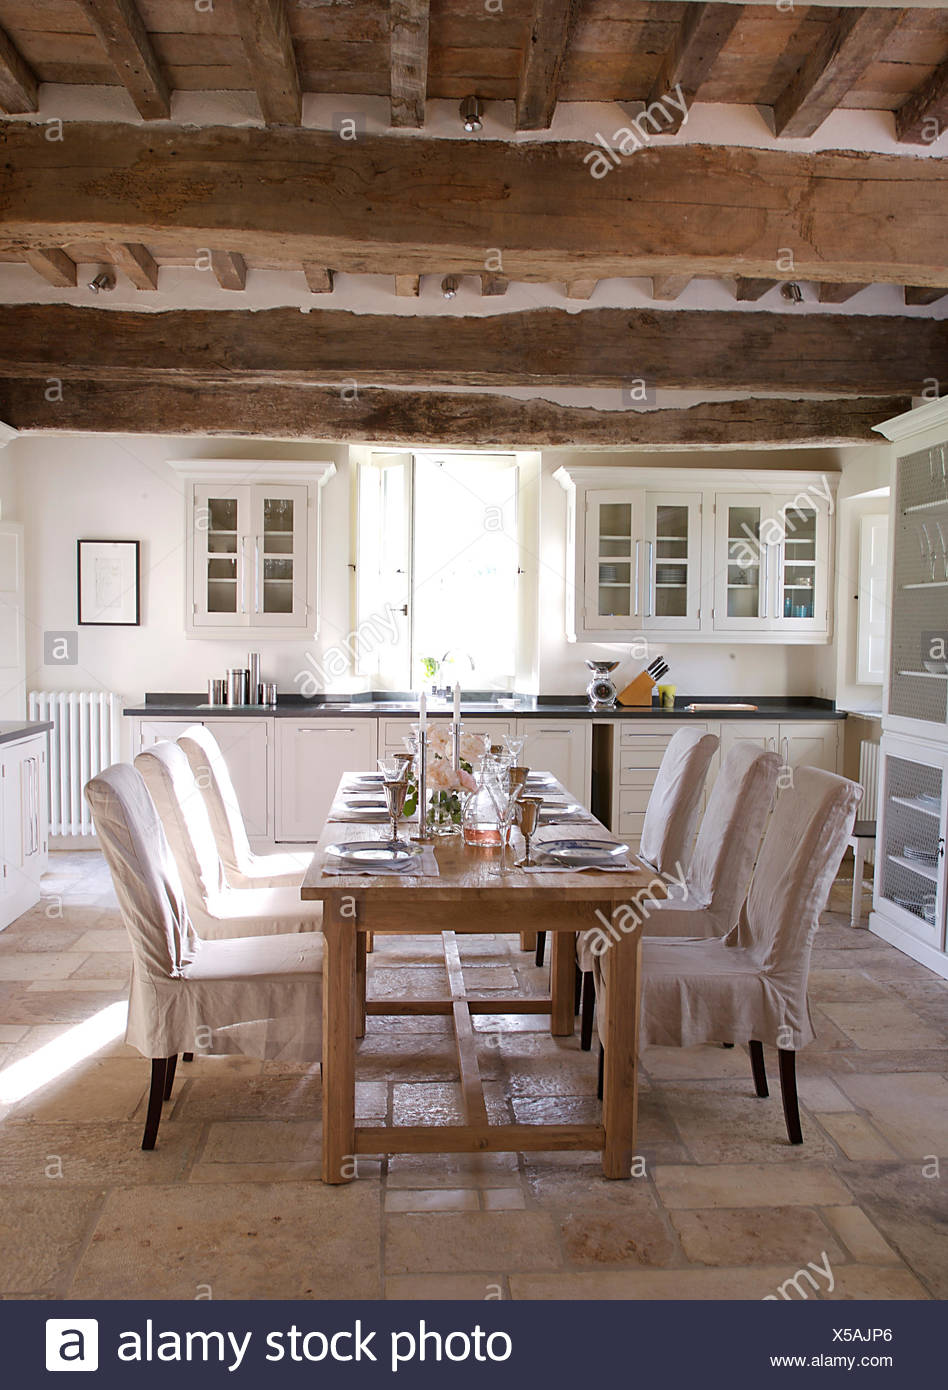 White Loose Covers On Chairs At Simple Wooden Table Set For Lunch In Italian Country Dining Room